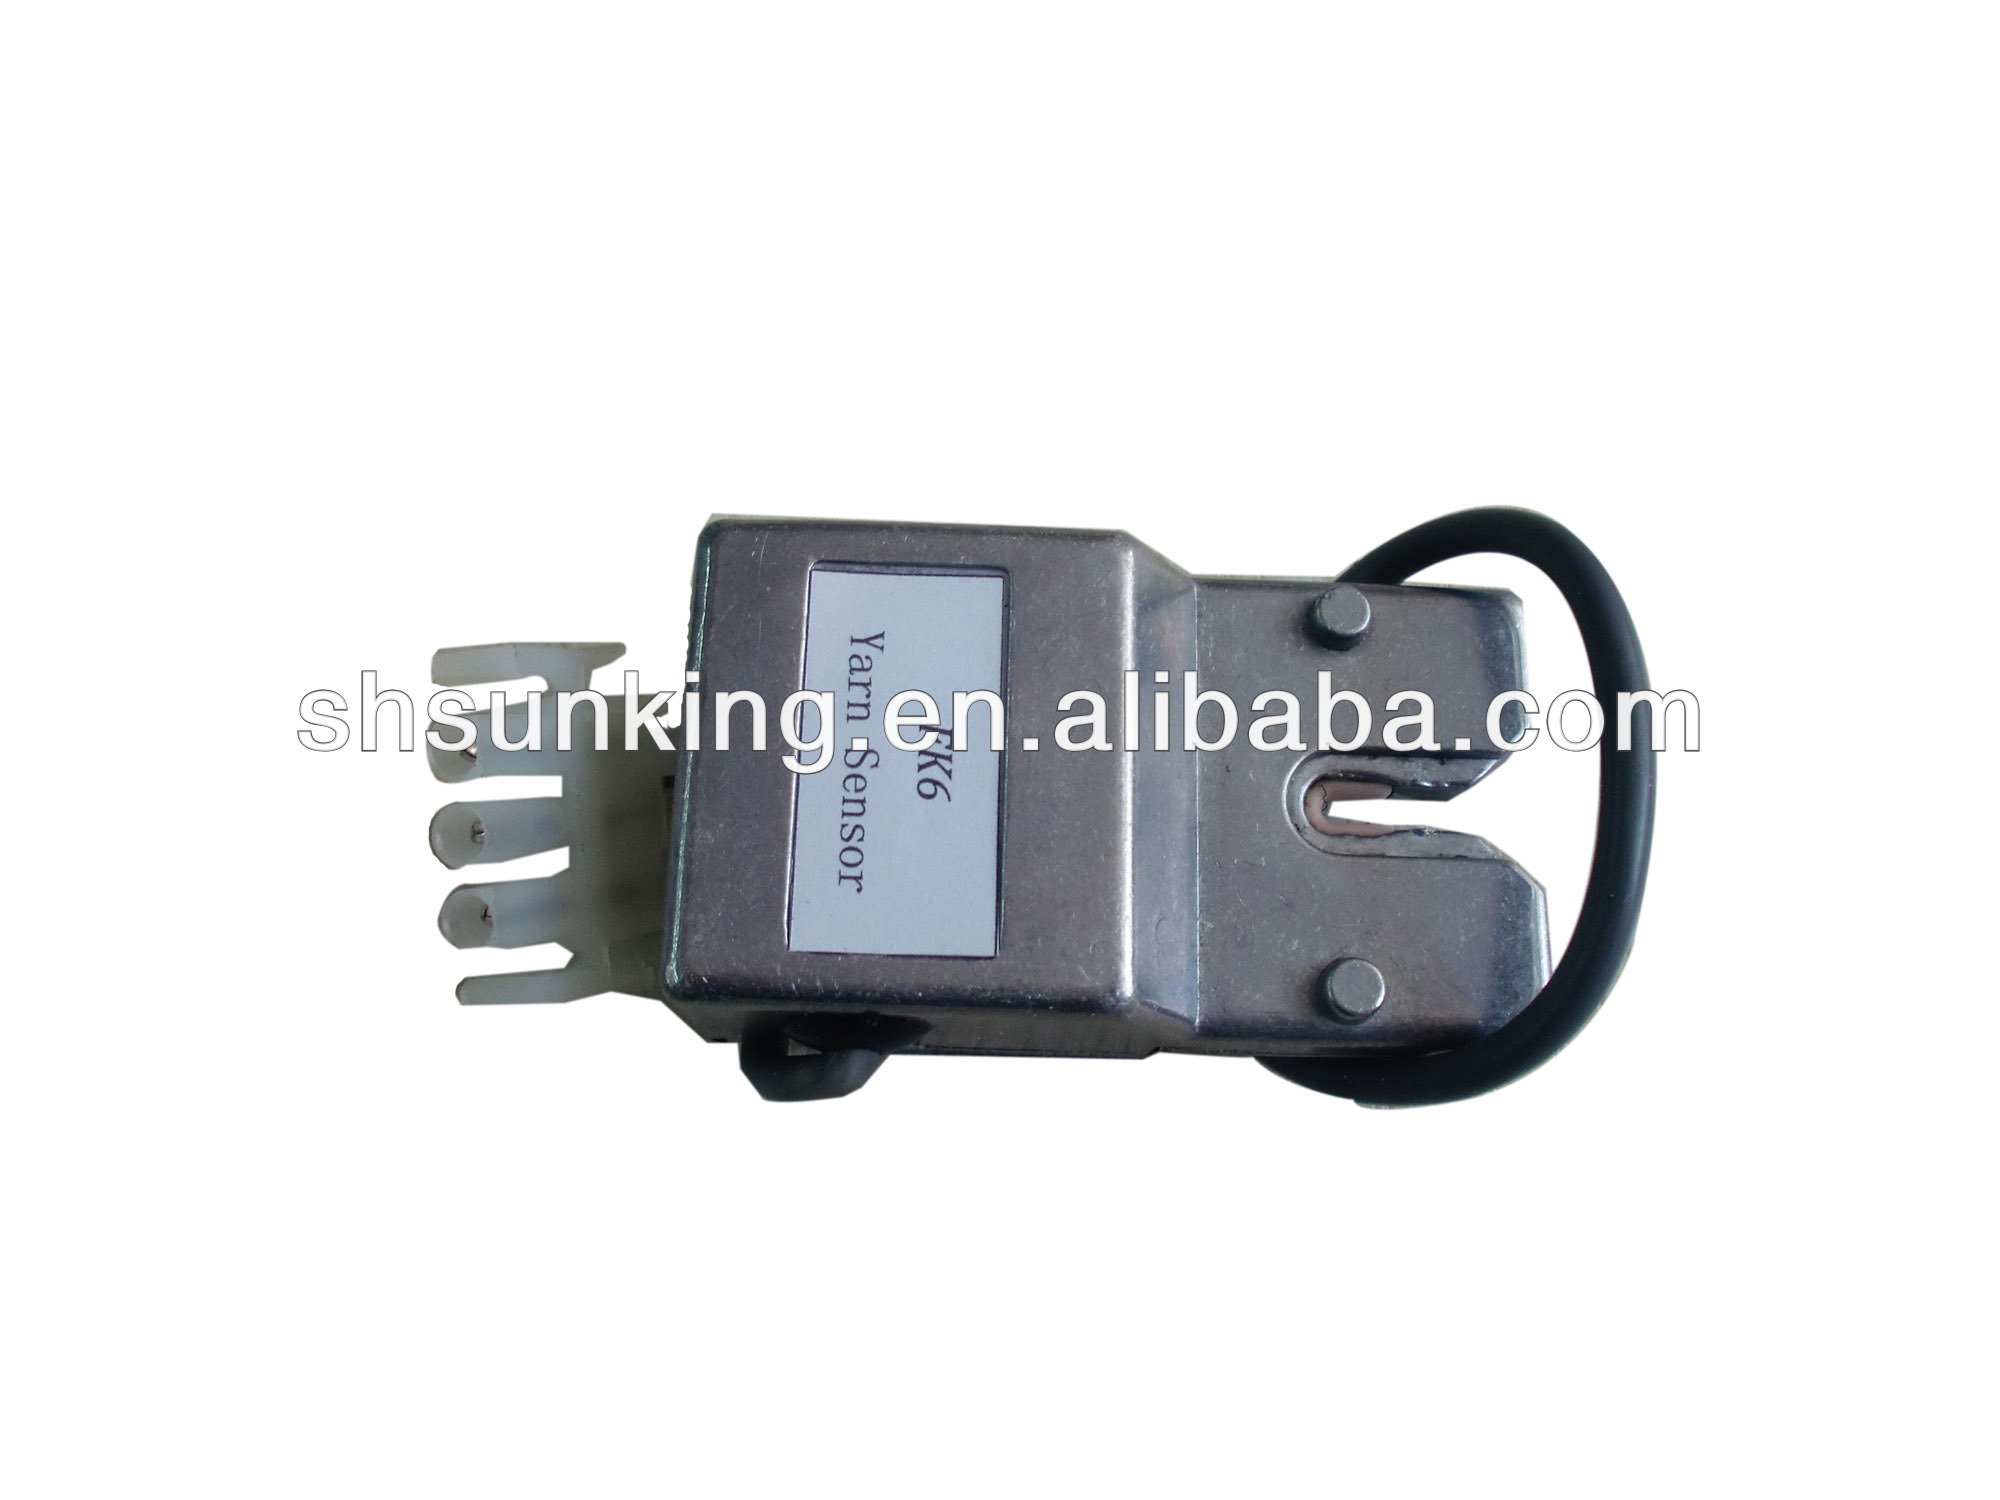 Yarn sensor for textile machine parts